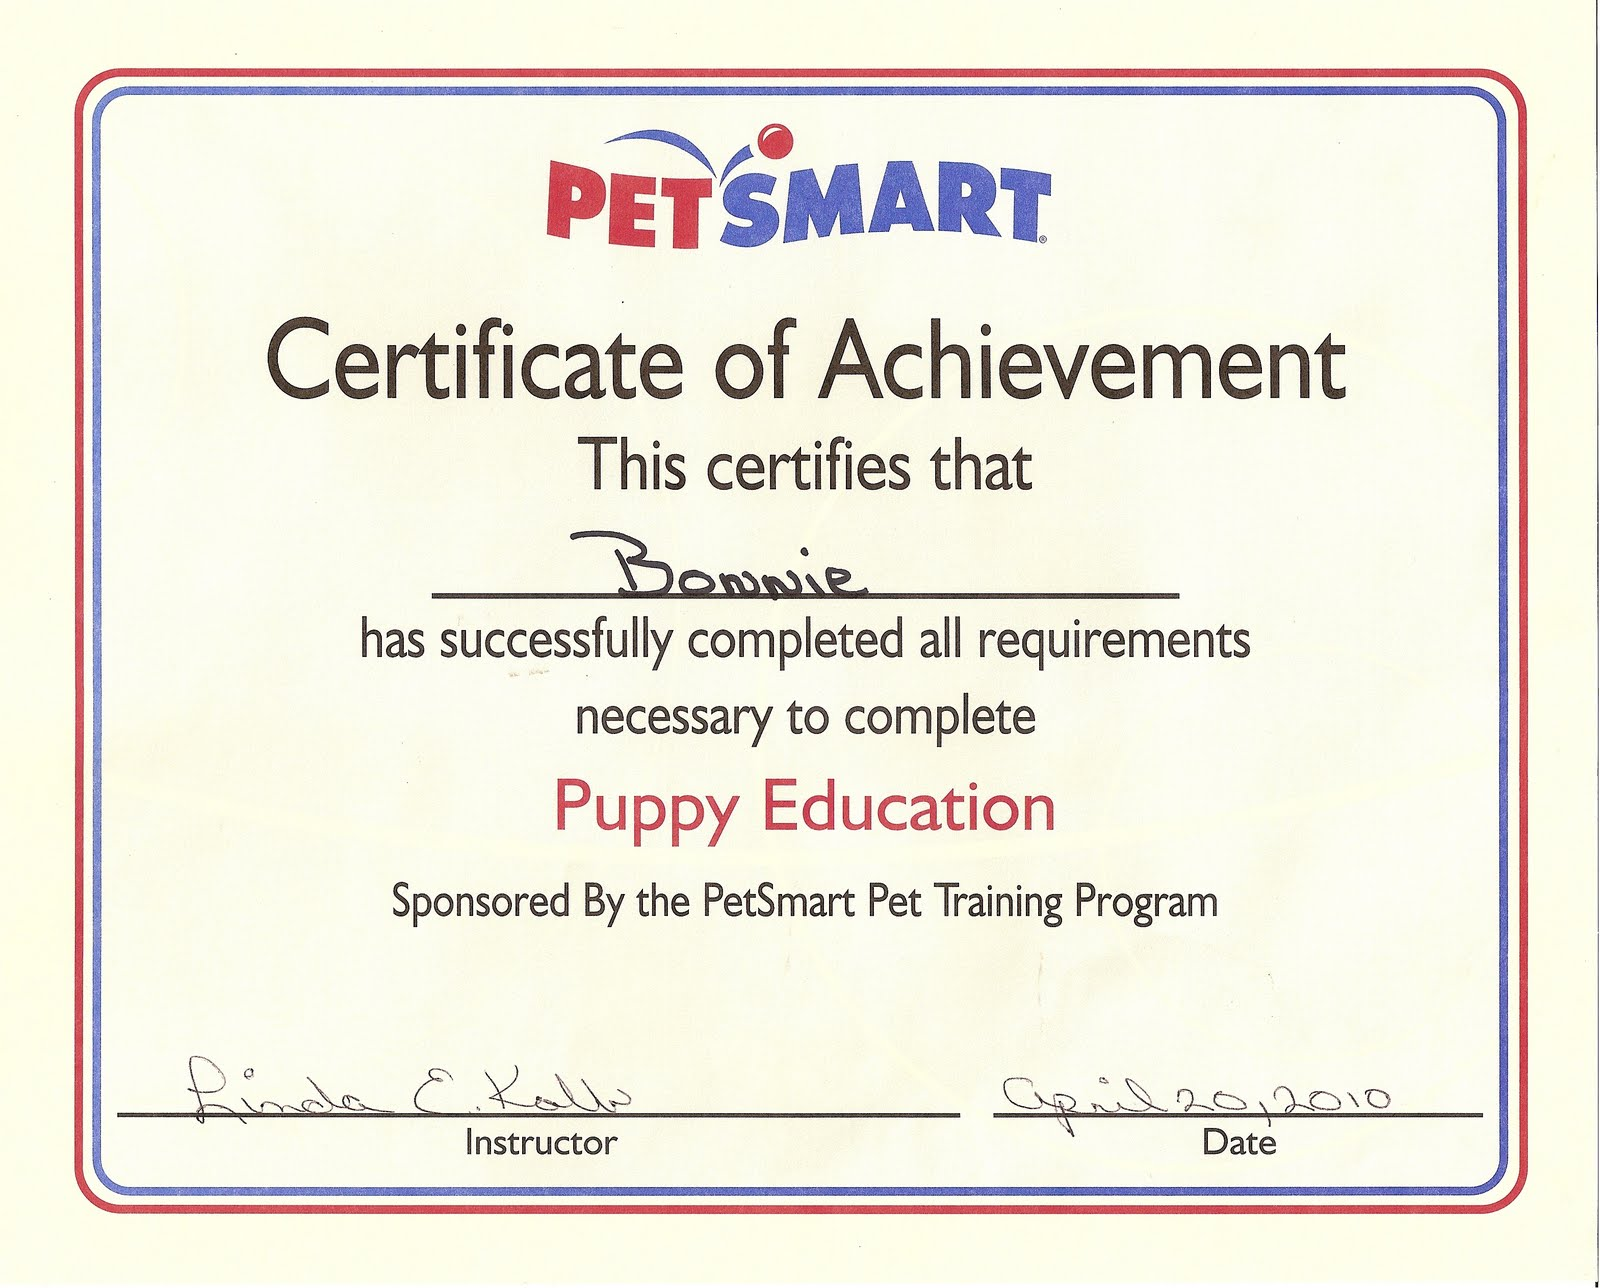 Dog Obedience Graduation Certificate Get Dog Training Advise